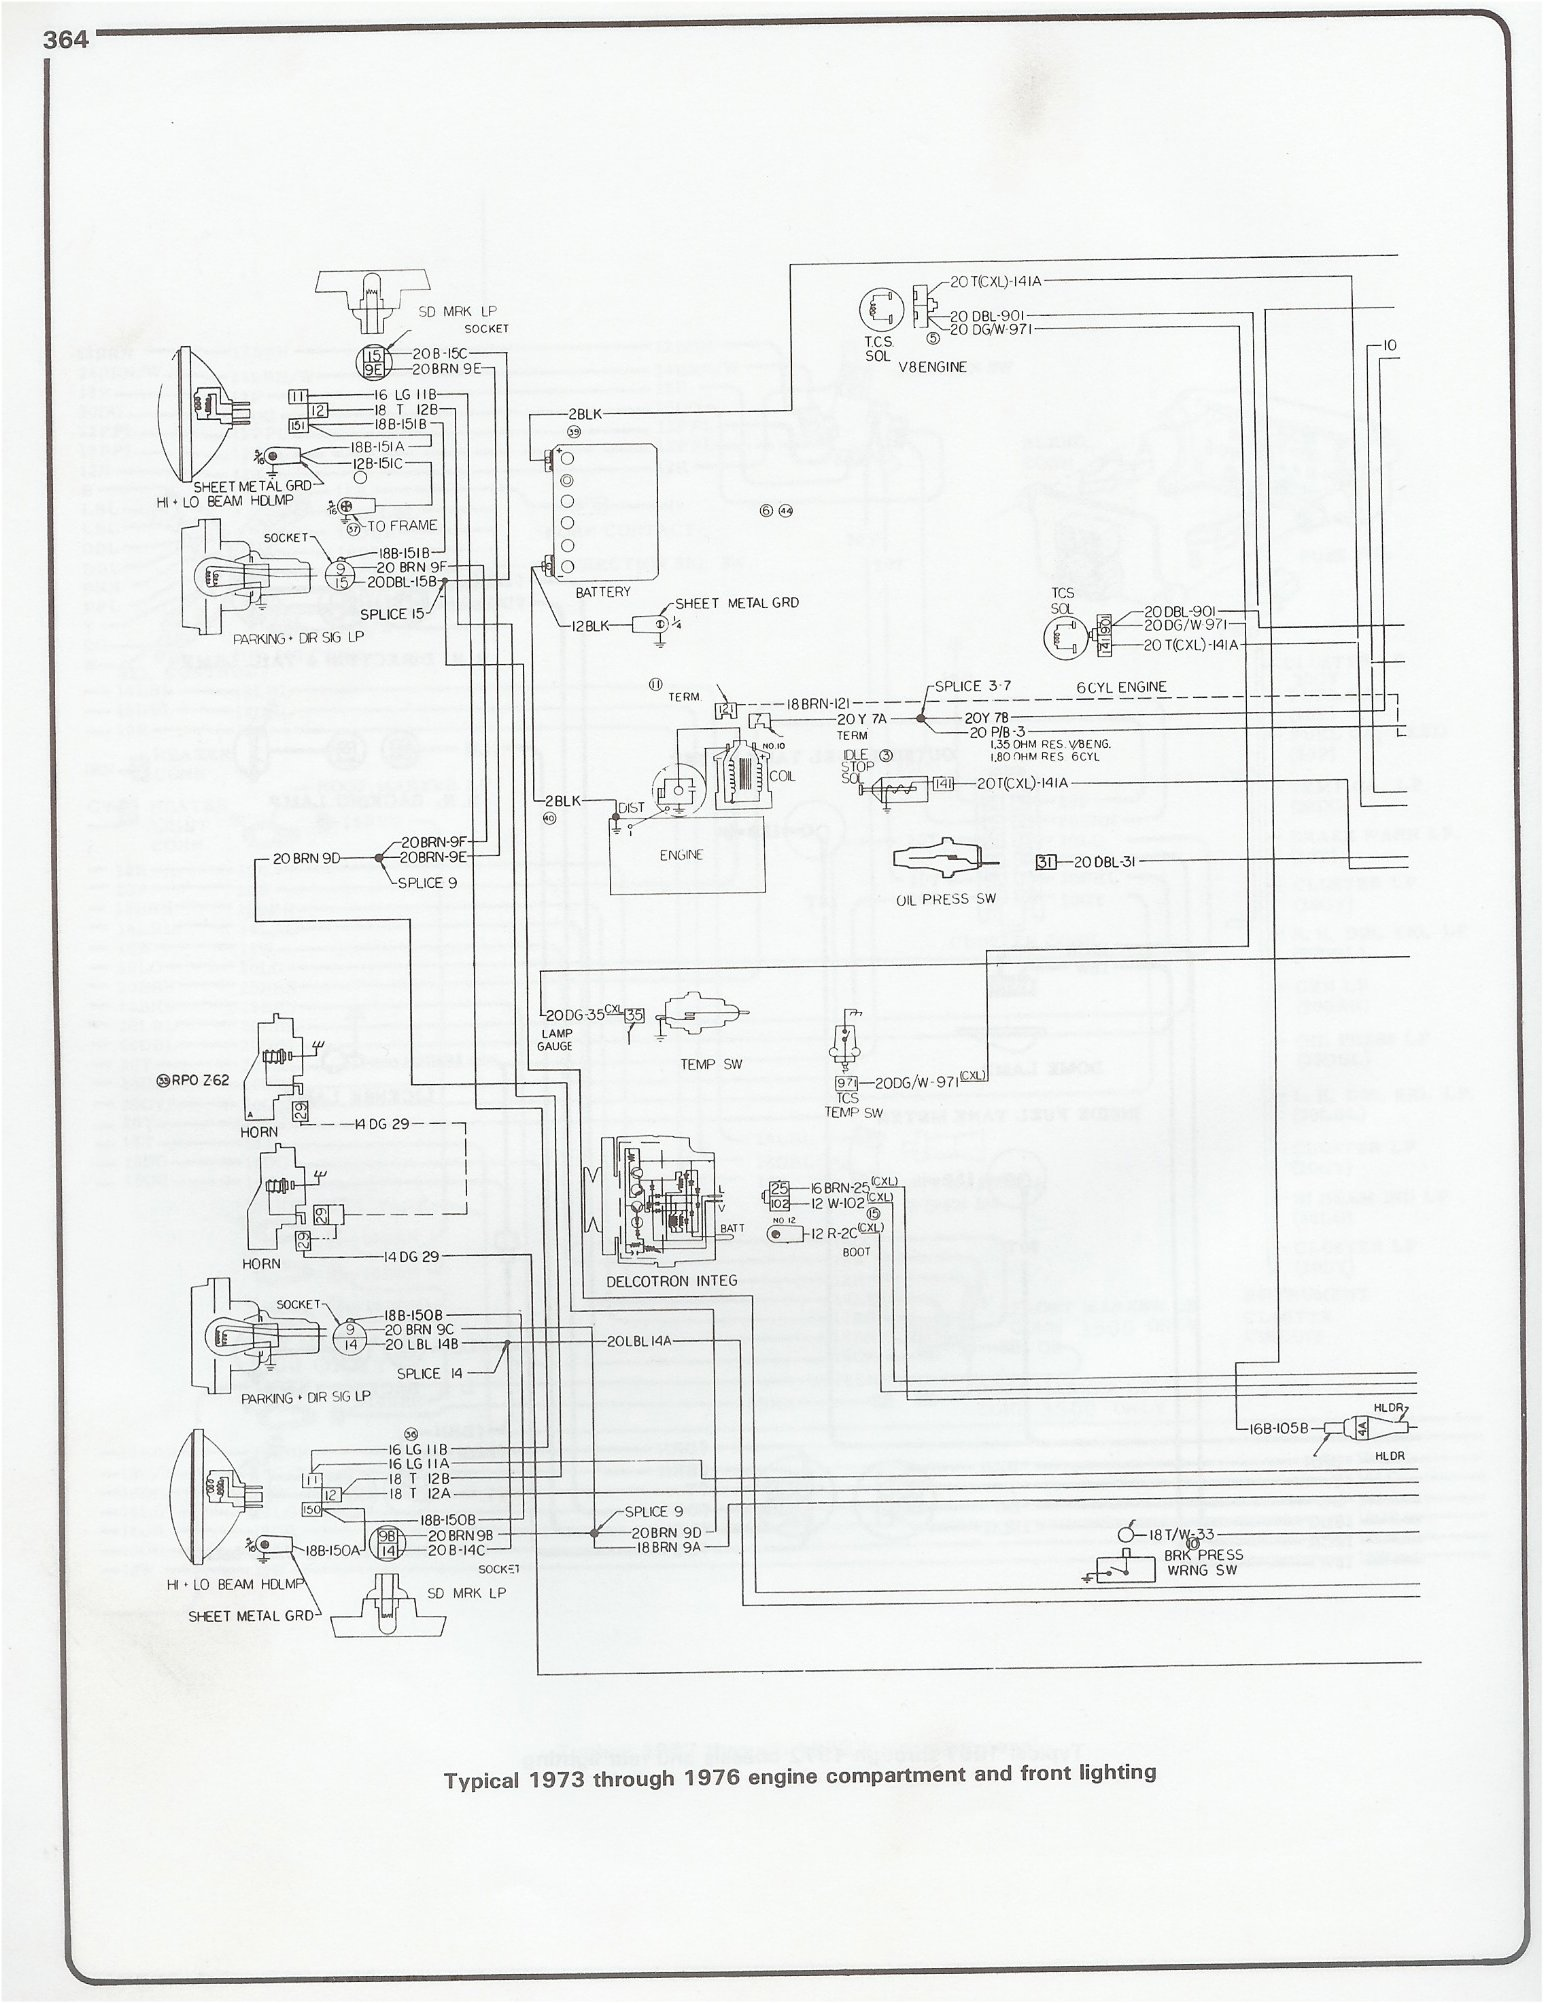 73 76_eng_frt_light complete 73 87 wiring diagrams  at gsmportal.co